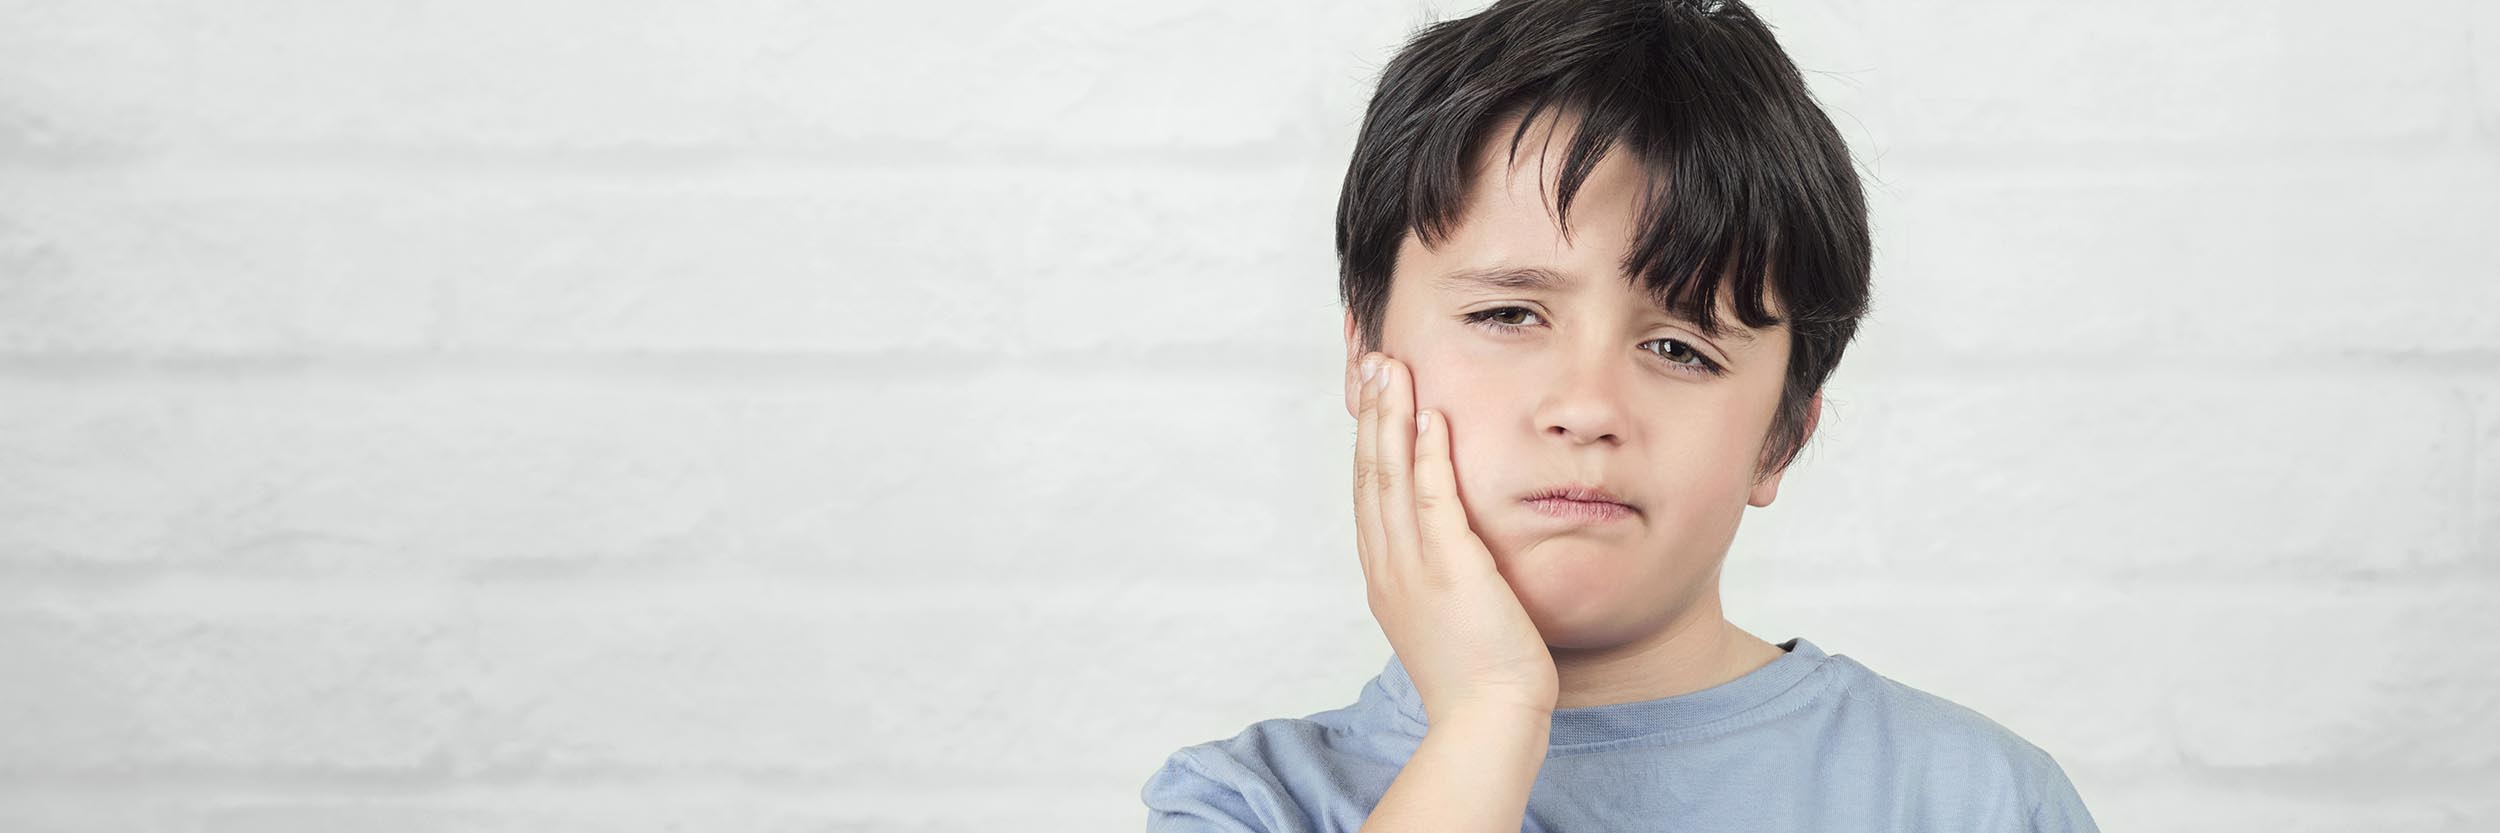 Boy with Dental Pain